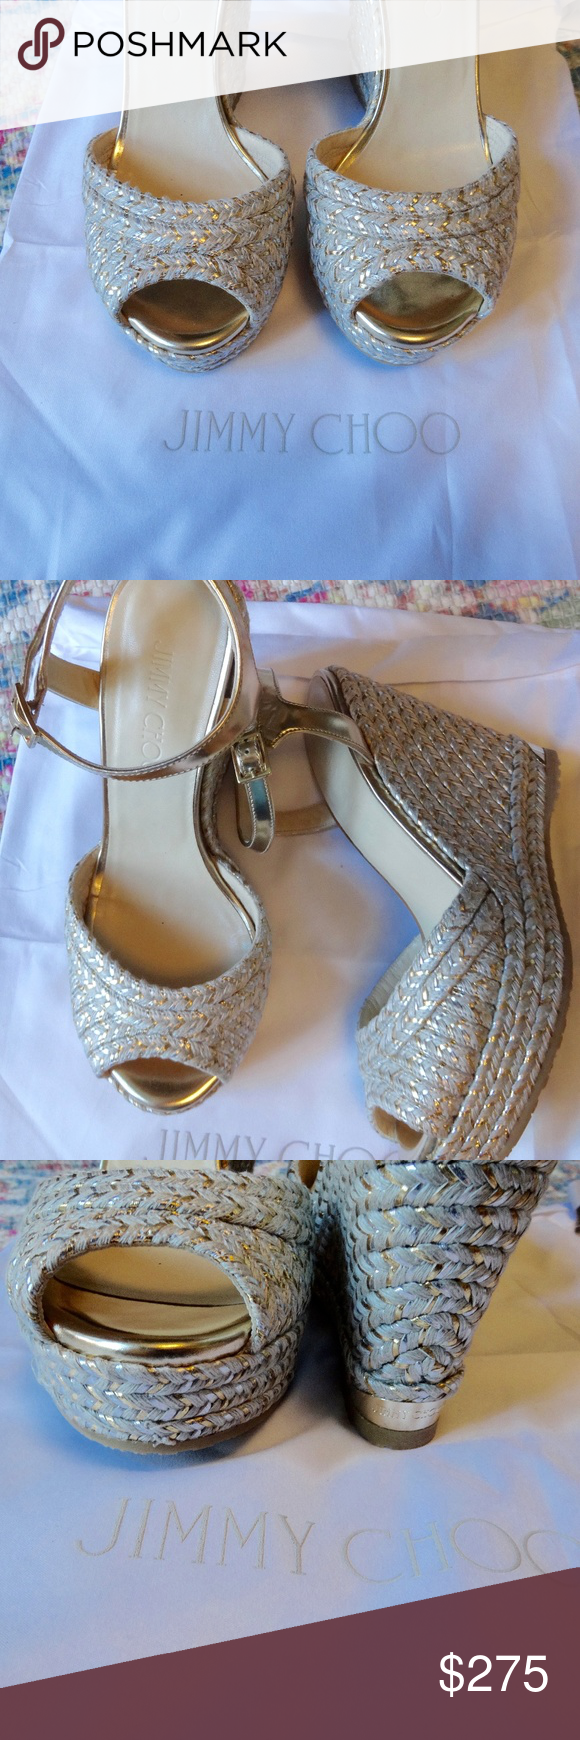 b605c6b9c9ba Jimmy Choo Perla Wedge Perla wedge in tan. The shoes also have gold and  silver details. Adorable. Jimmy Choo Shoes Wedges